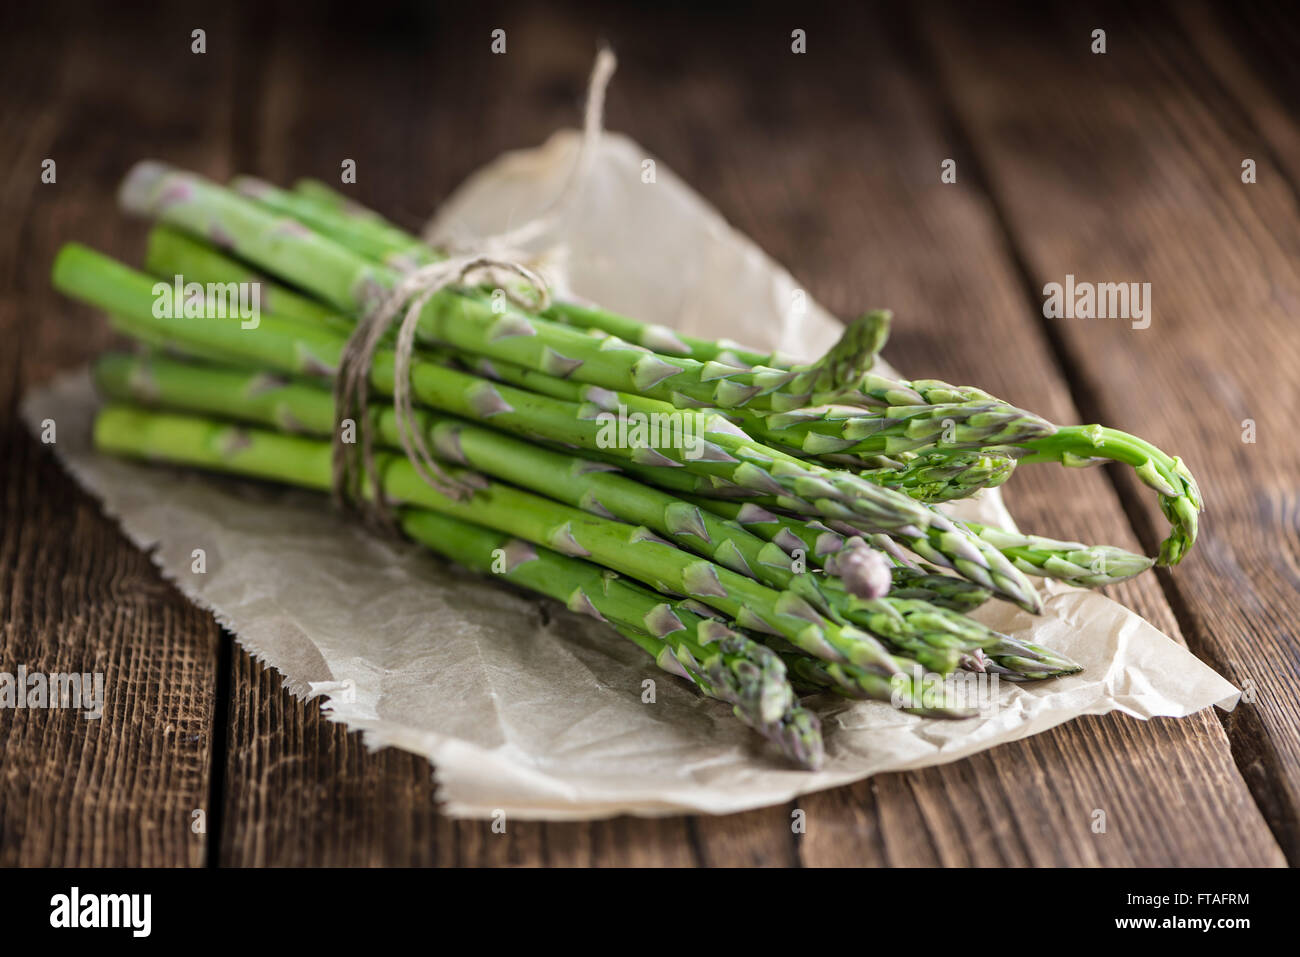 Green Asparagus (fresh harvested) on an old wooden table (selective focus) - Stock Image